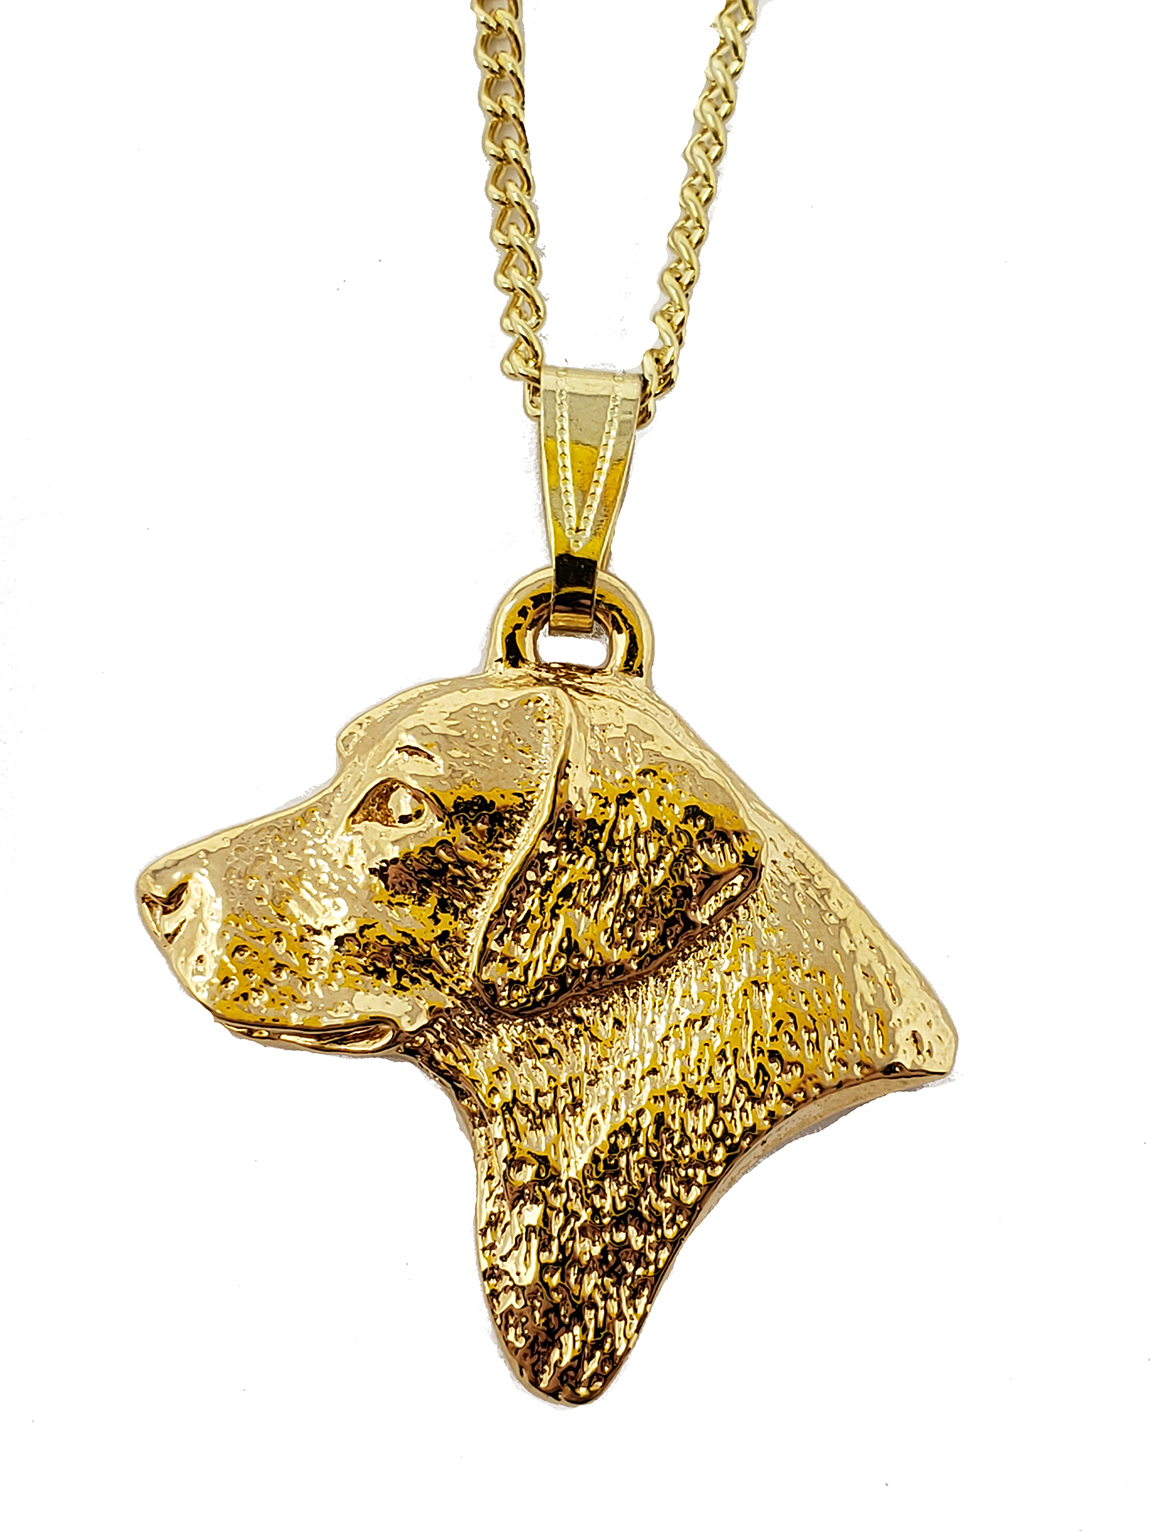 Labrador Retriever 24K Gold Plated Pendant with Necklace Head